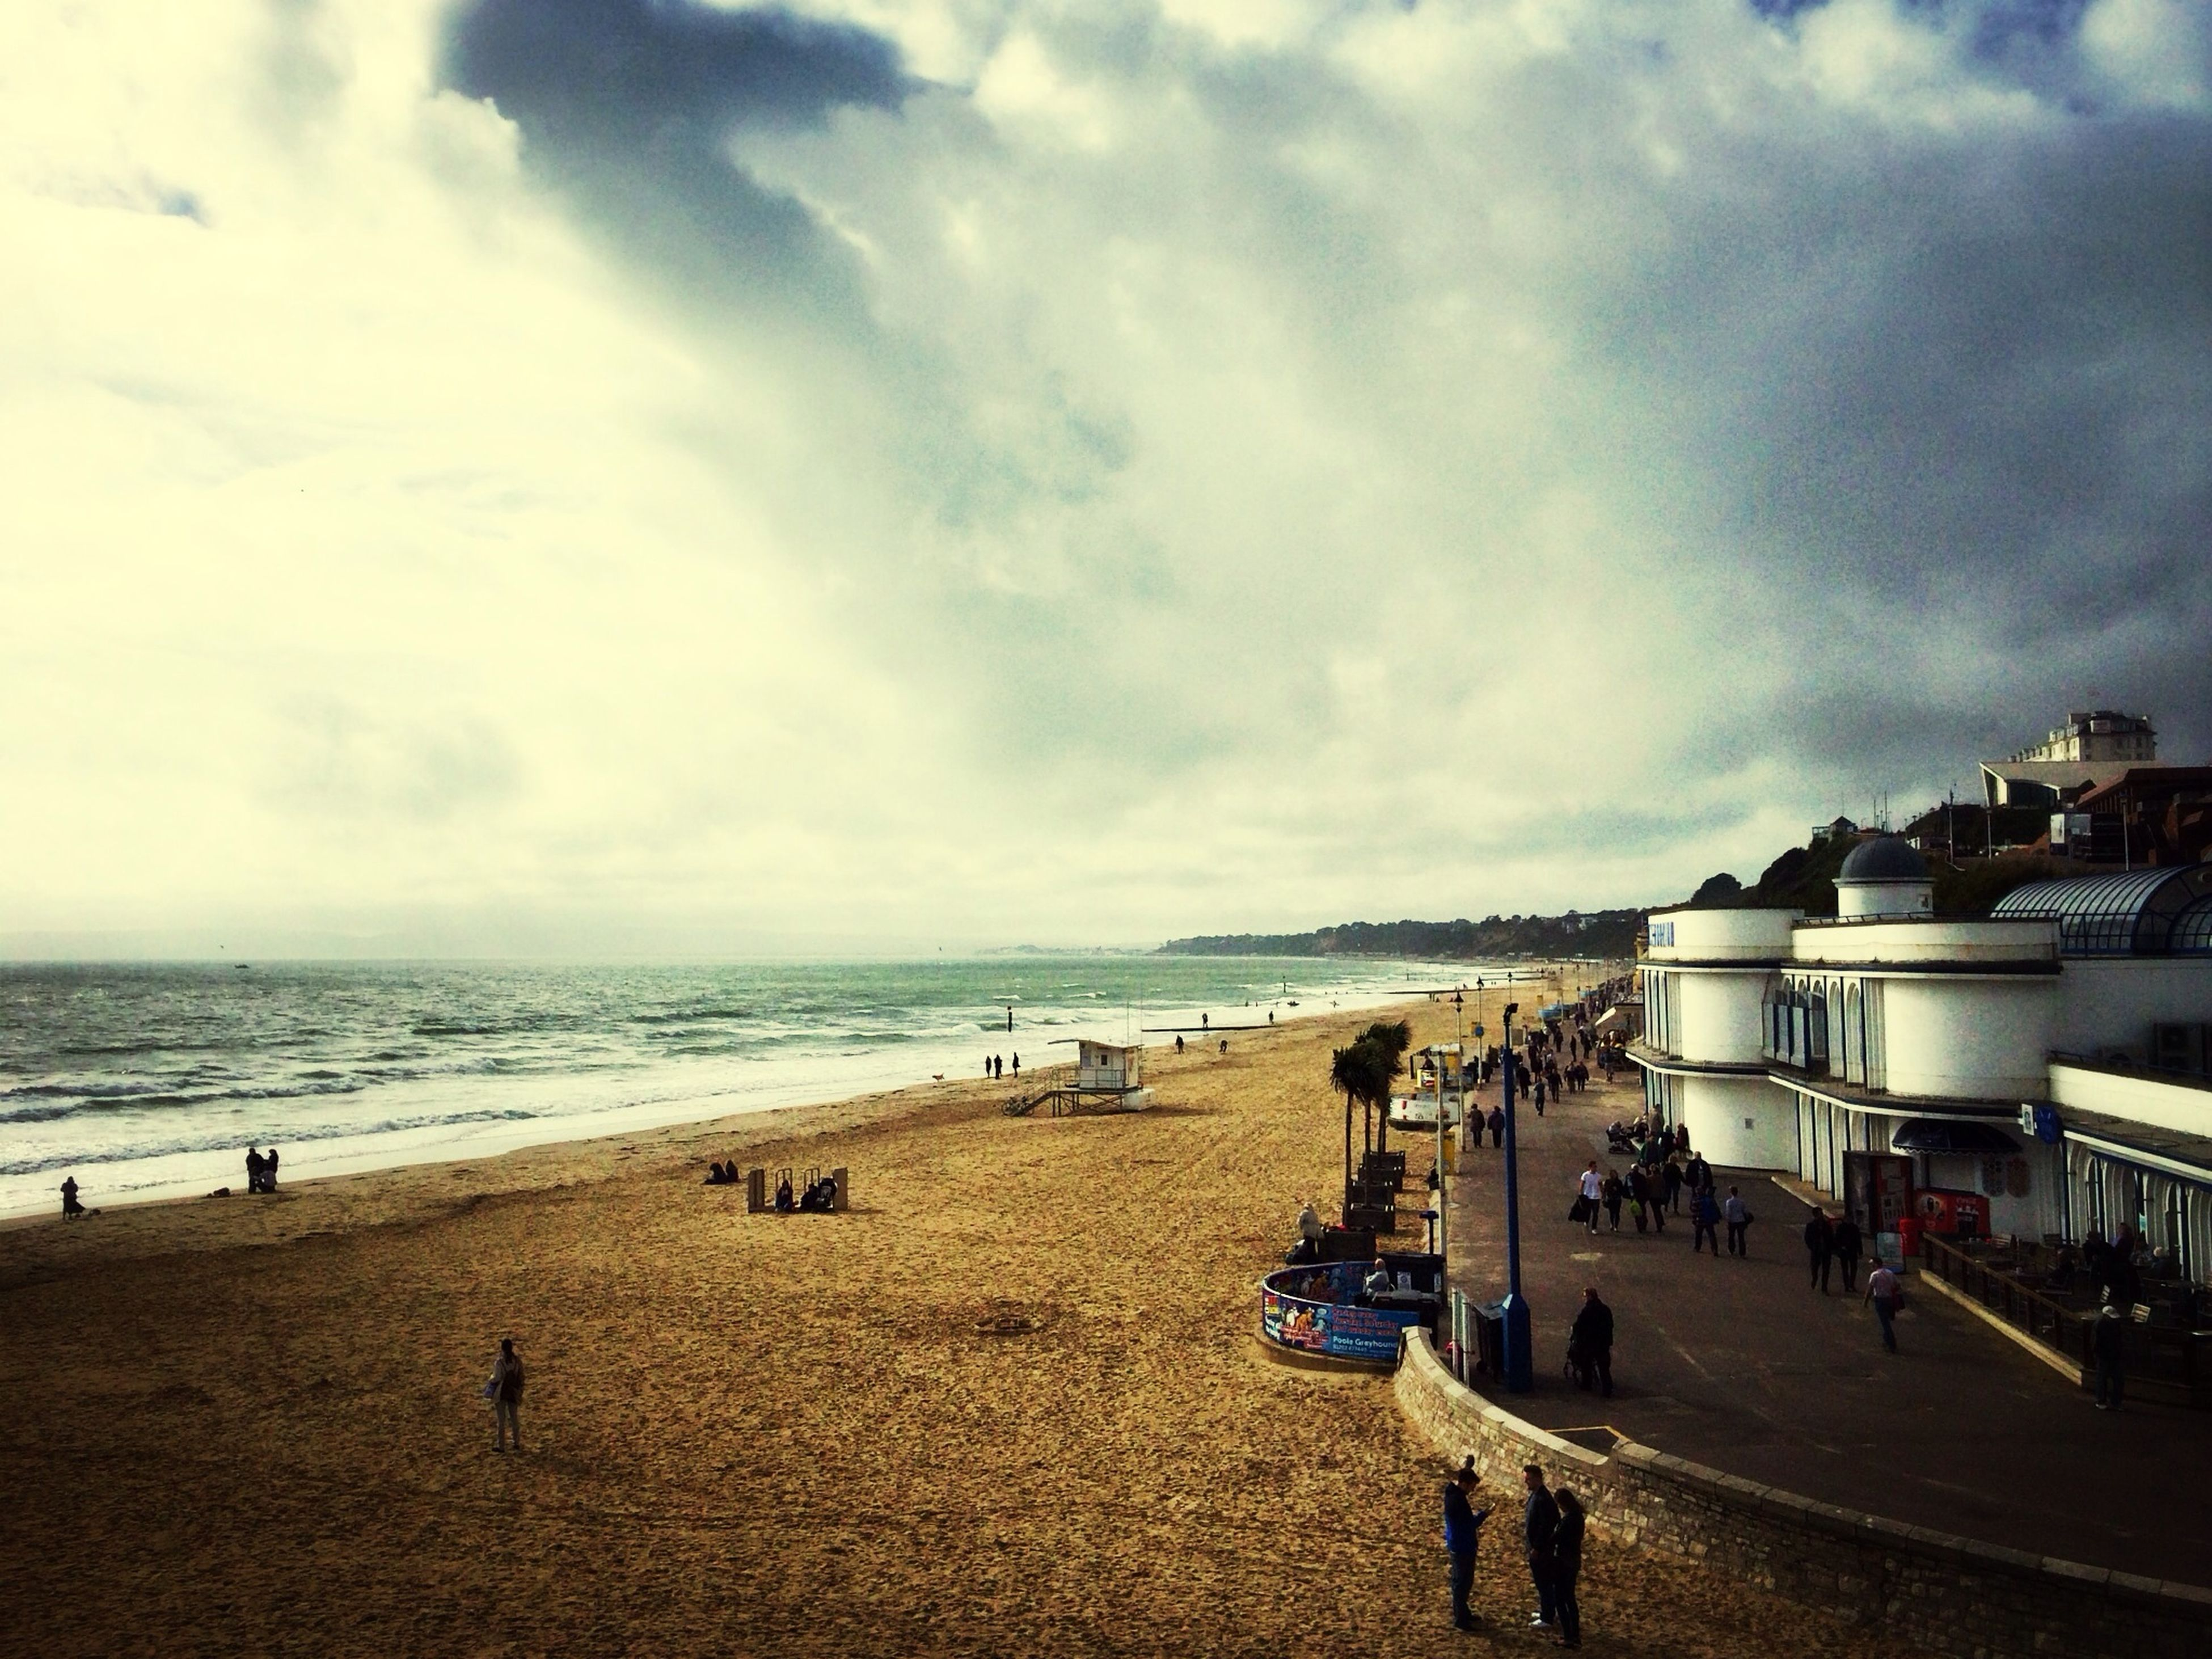 sea, beach, horizon over water, sky, shore, water, sand, cloud - sky, cloudy, scenics, cloud, tranquil scene, vacations, nature, beauty in nature, tranquility, coastline, day, incidental people